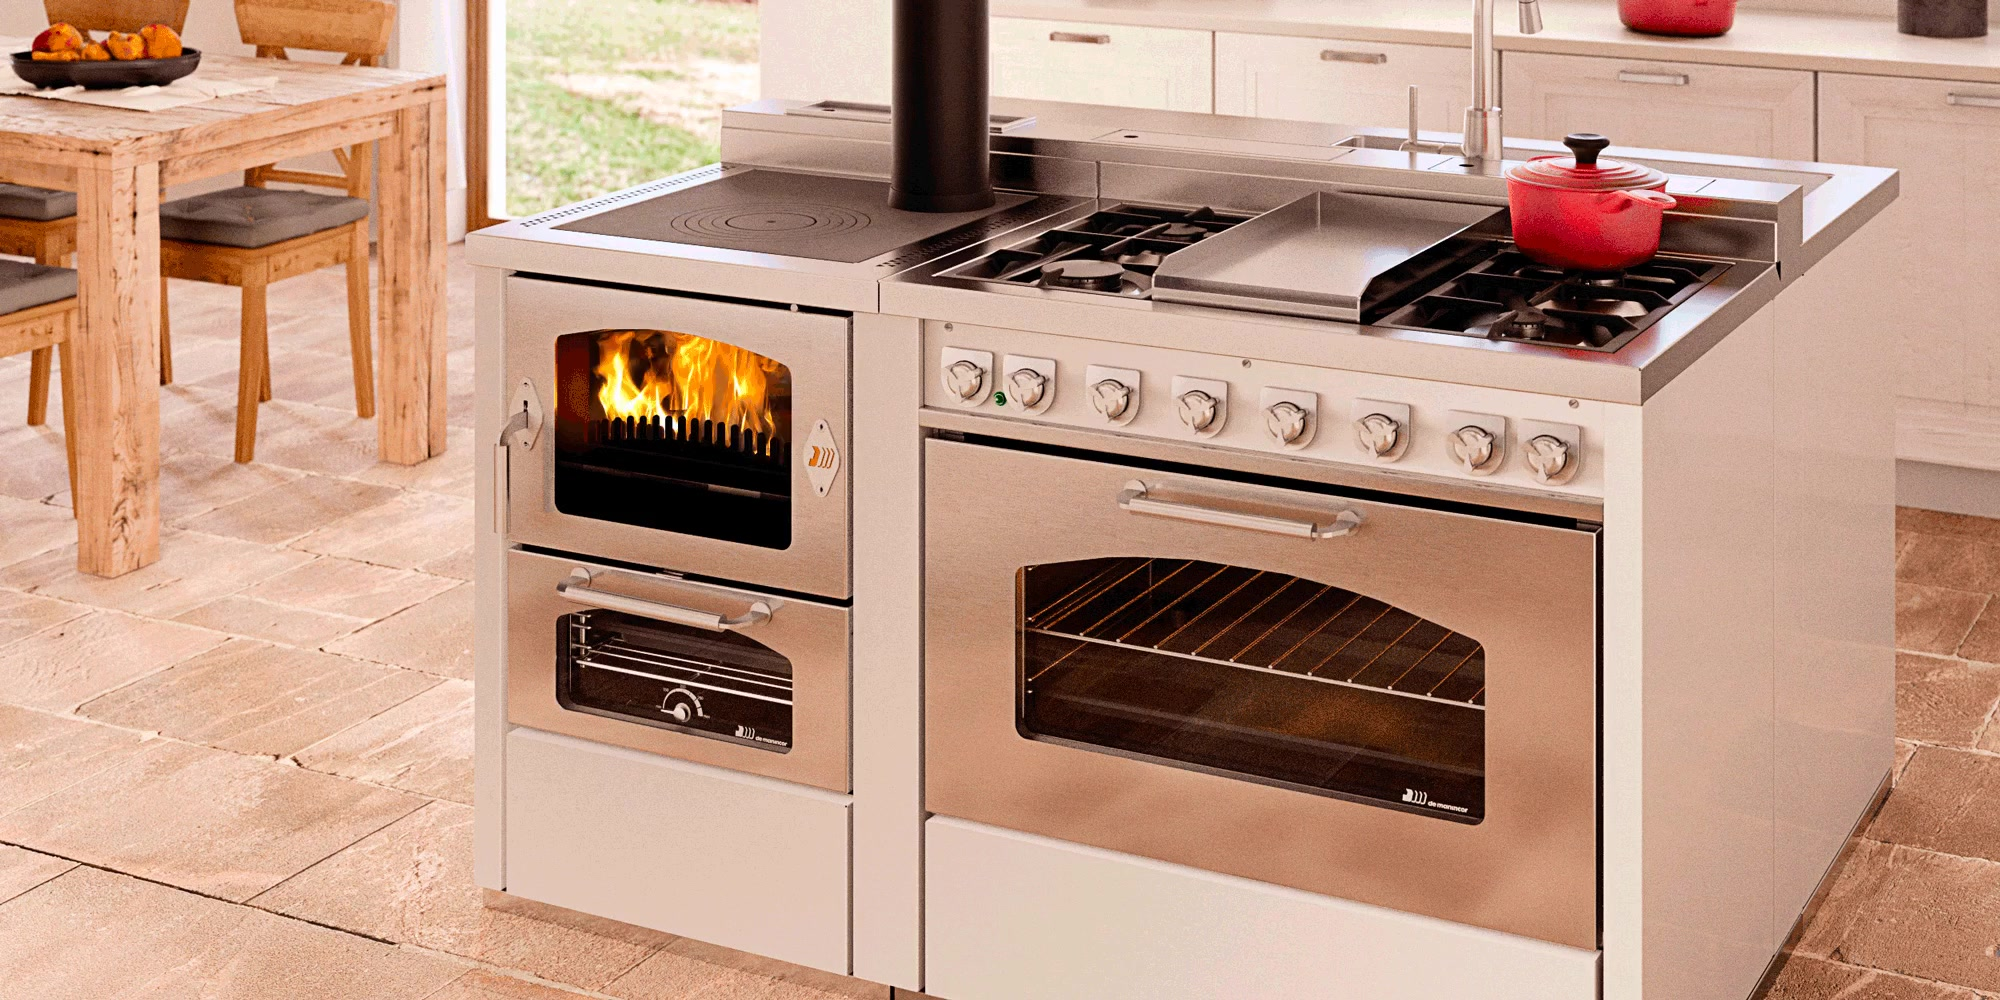 Wood Cookers Demanincor S P A